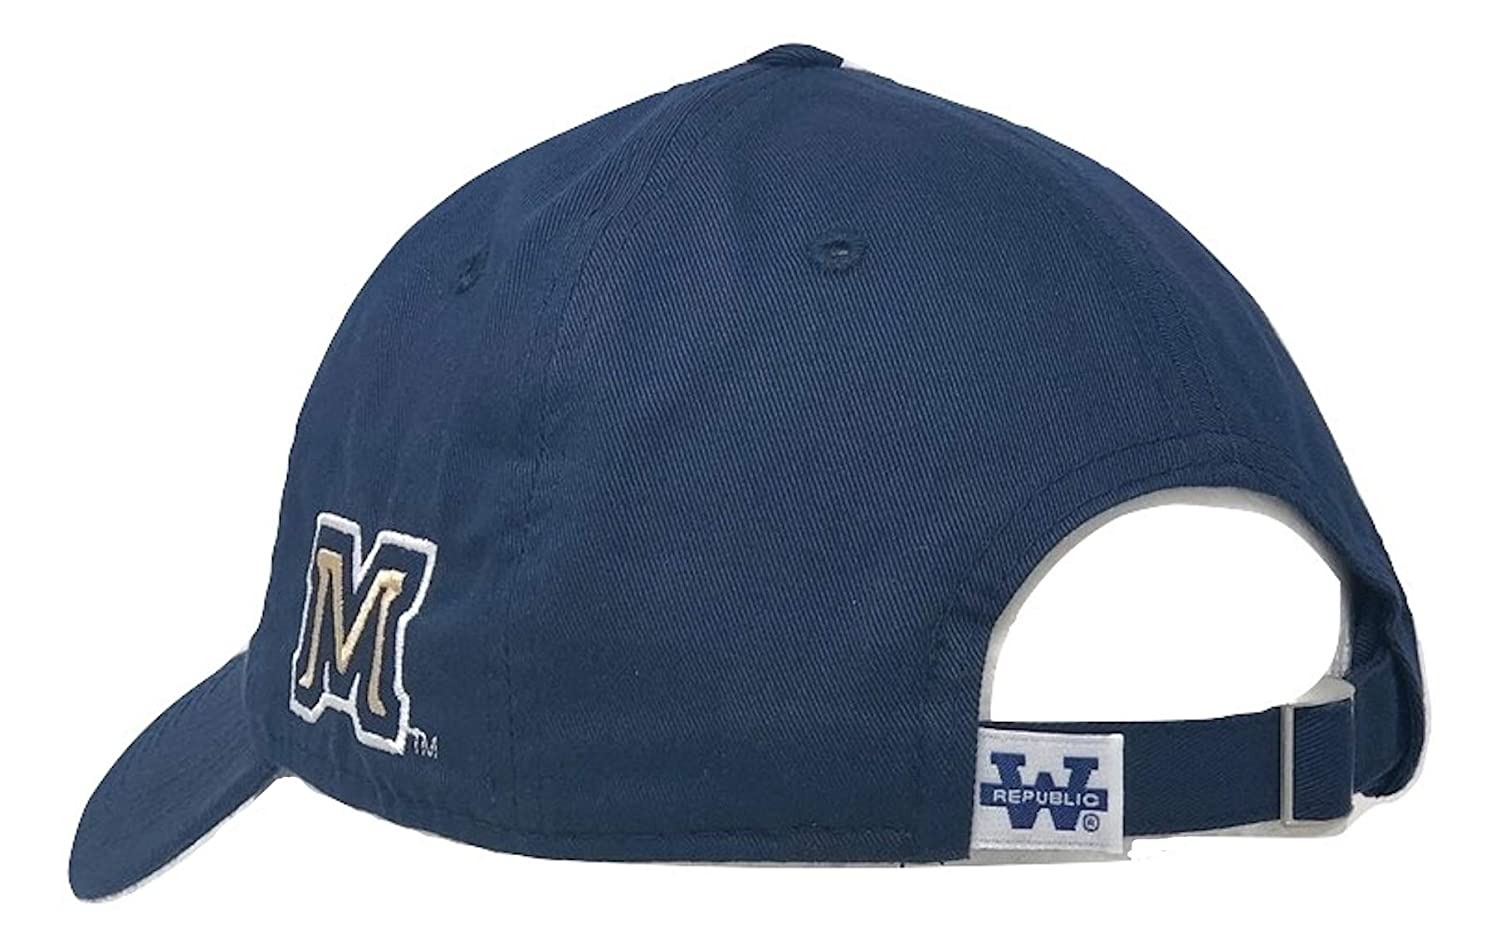 BHFC Montana State University MSU Bobcats Cotton Polo Style Relaxed Baseball Cap Hat Blue